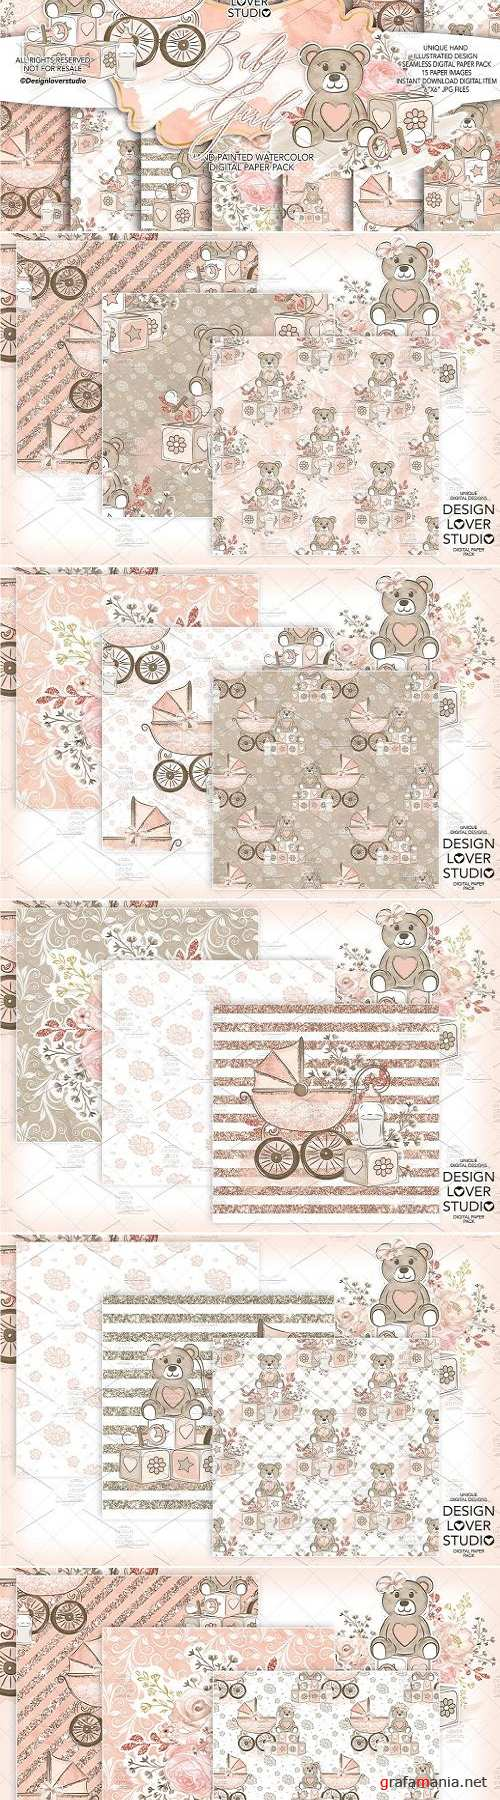 Baby girl digital paper - 3036662